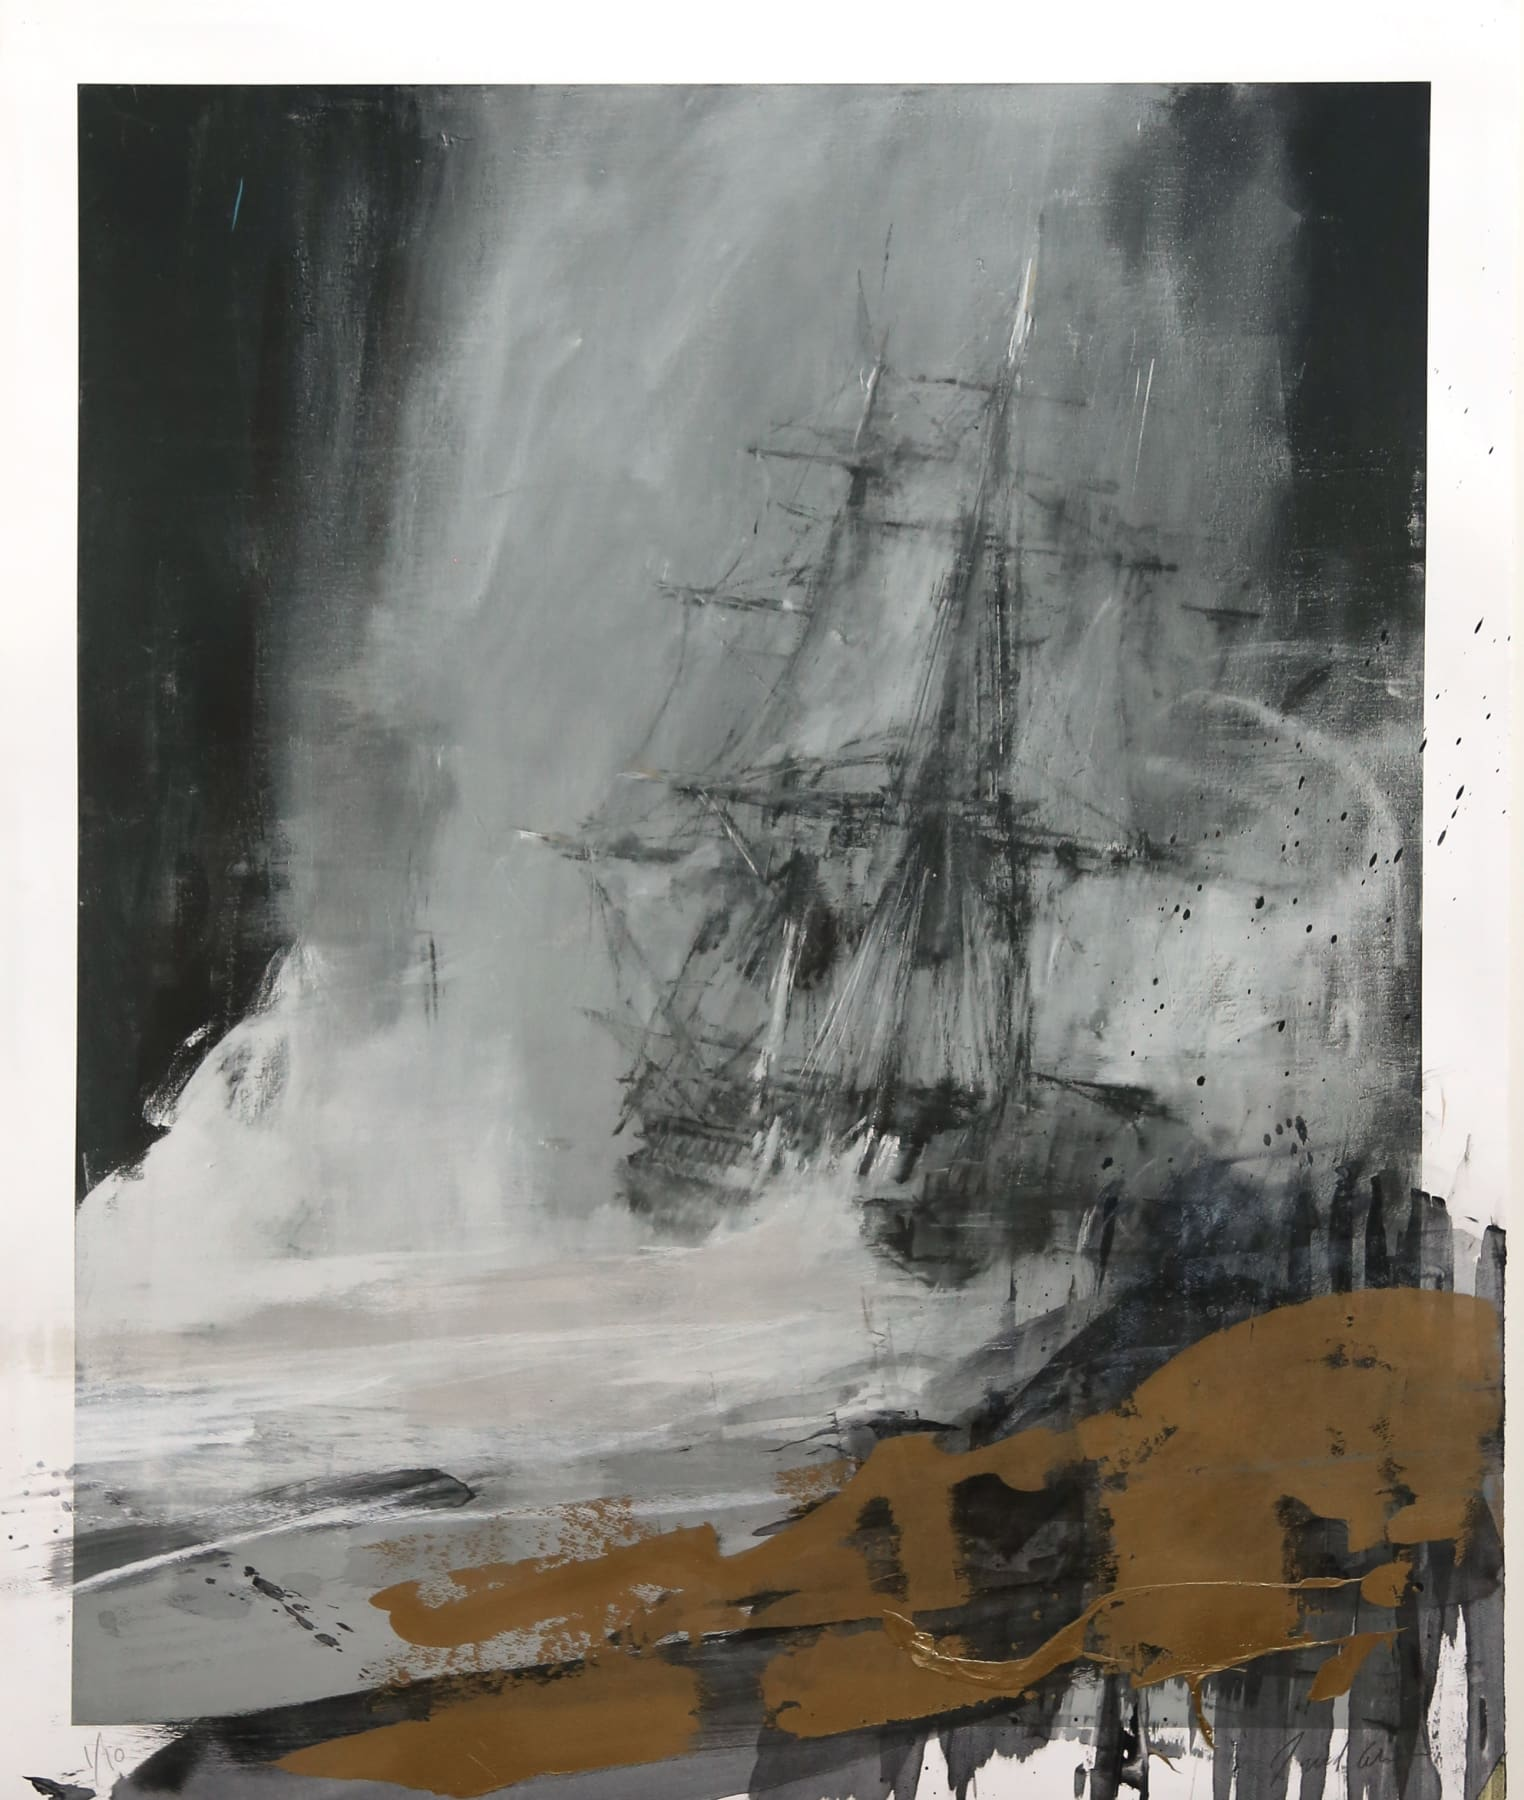 Jake Wood-Evans: reinvigorating maritime art